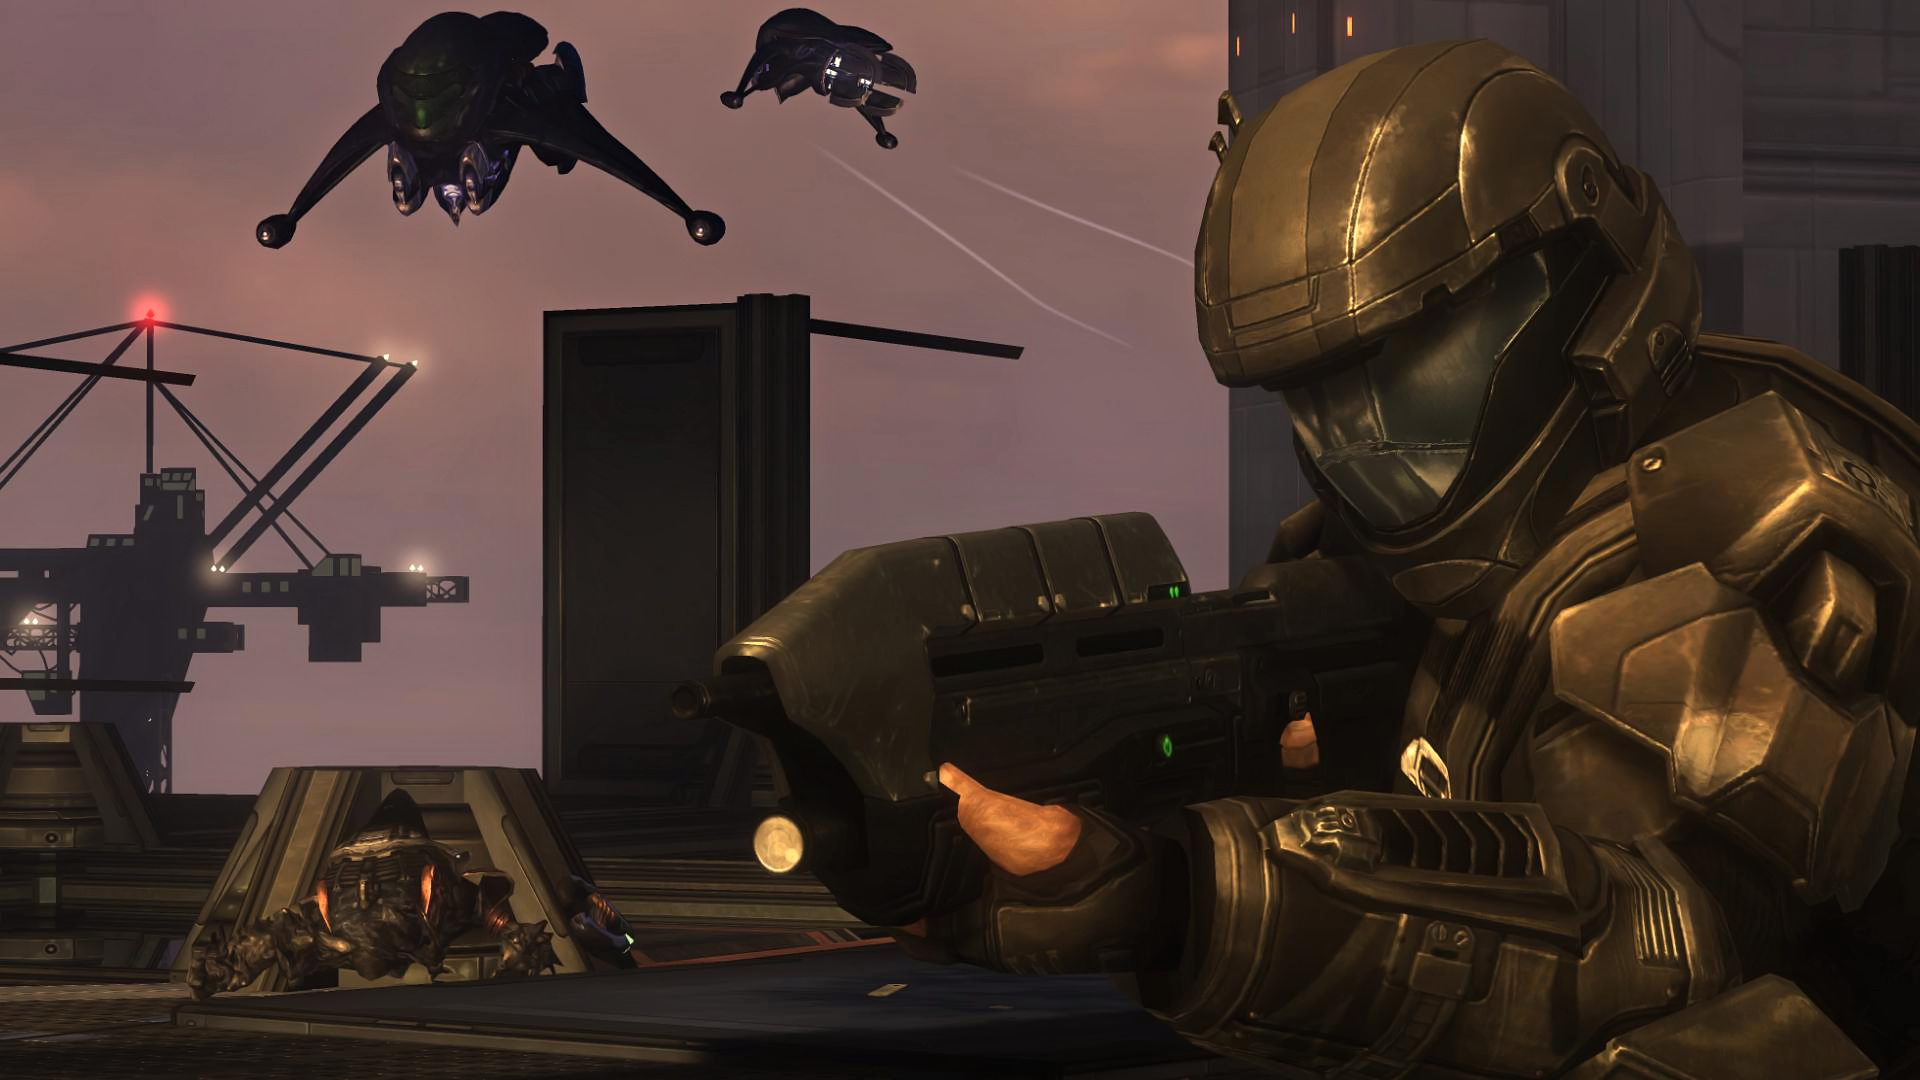 New Halo novel coming in March, starring ODST's main character